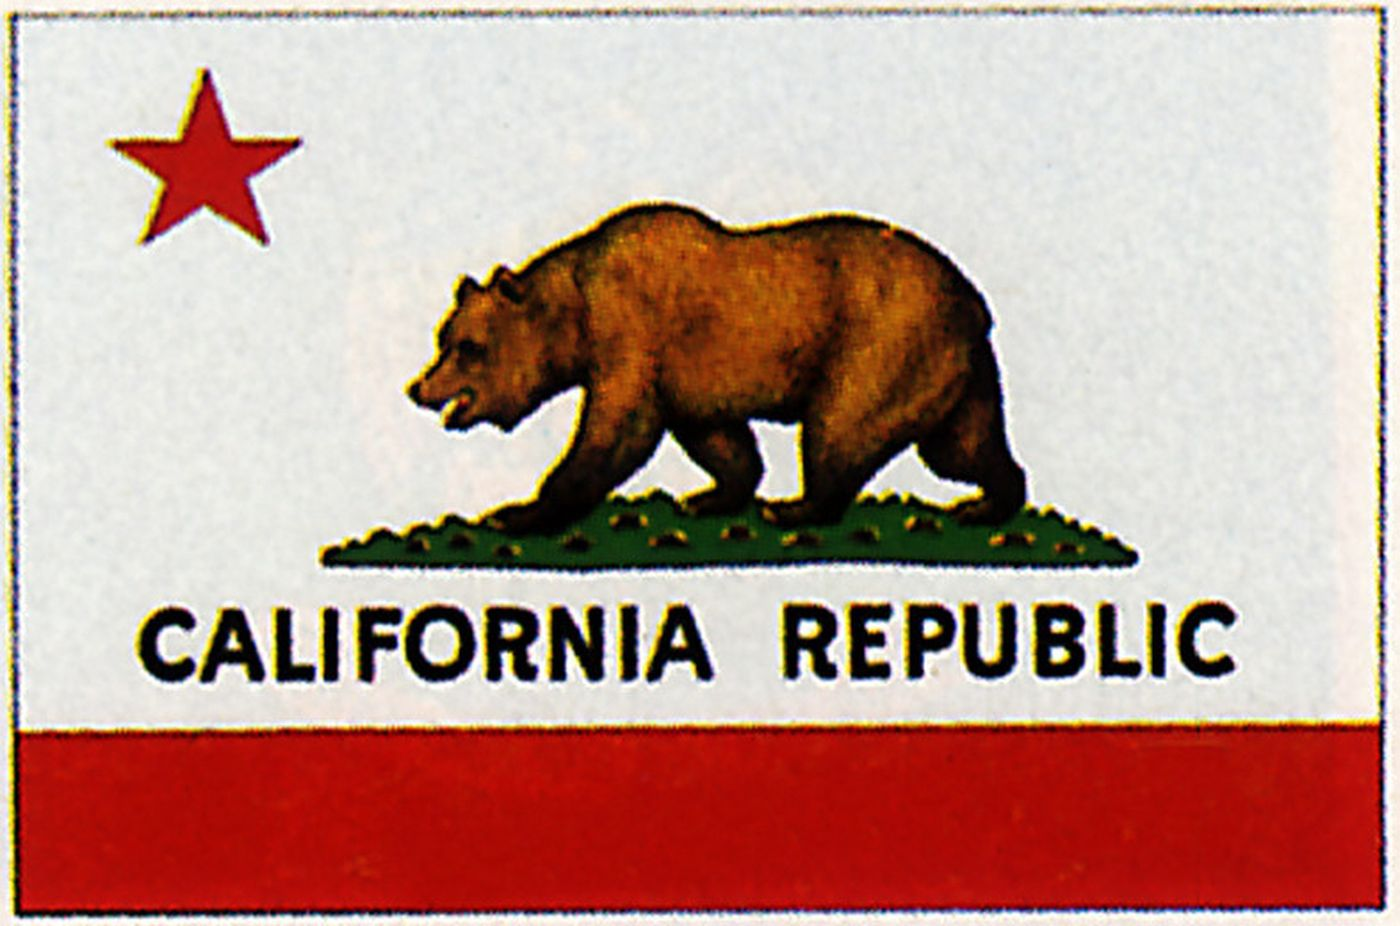 California S Gov Brown Issues Carbon Neutrality Order